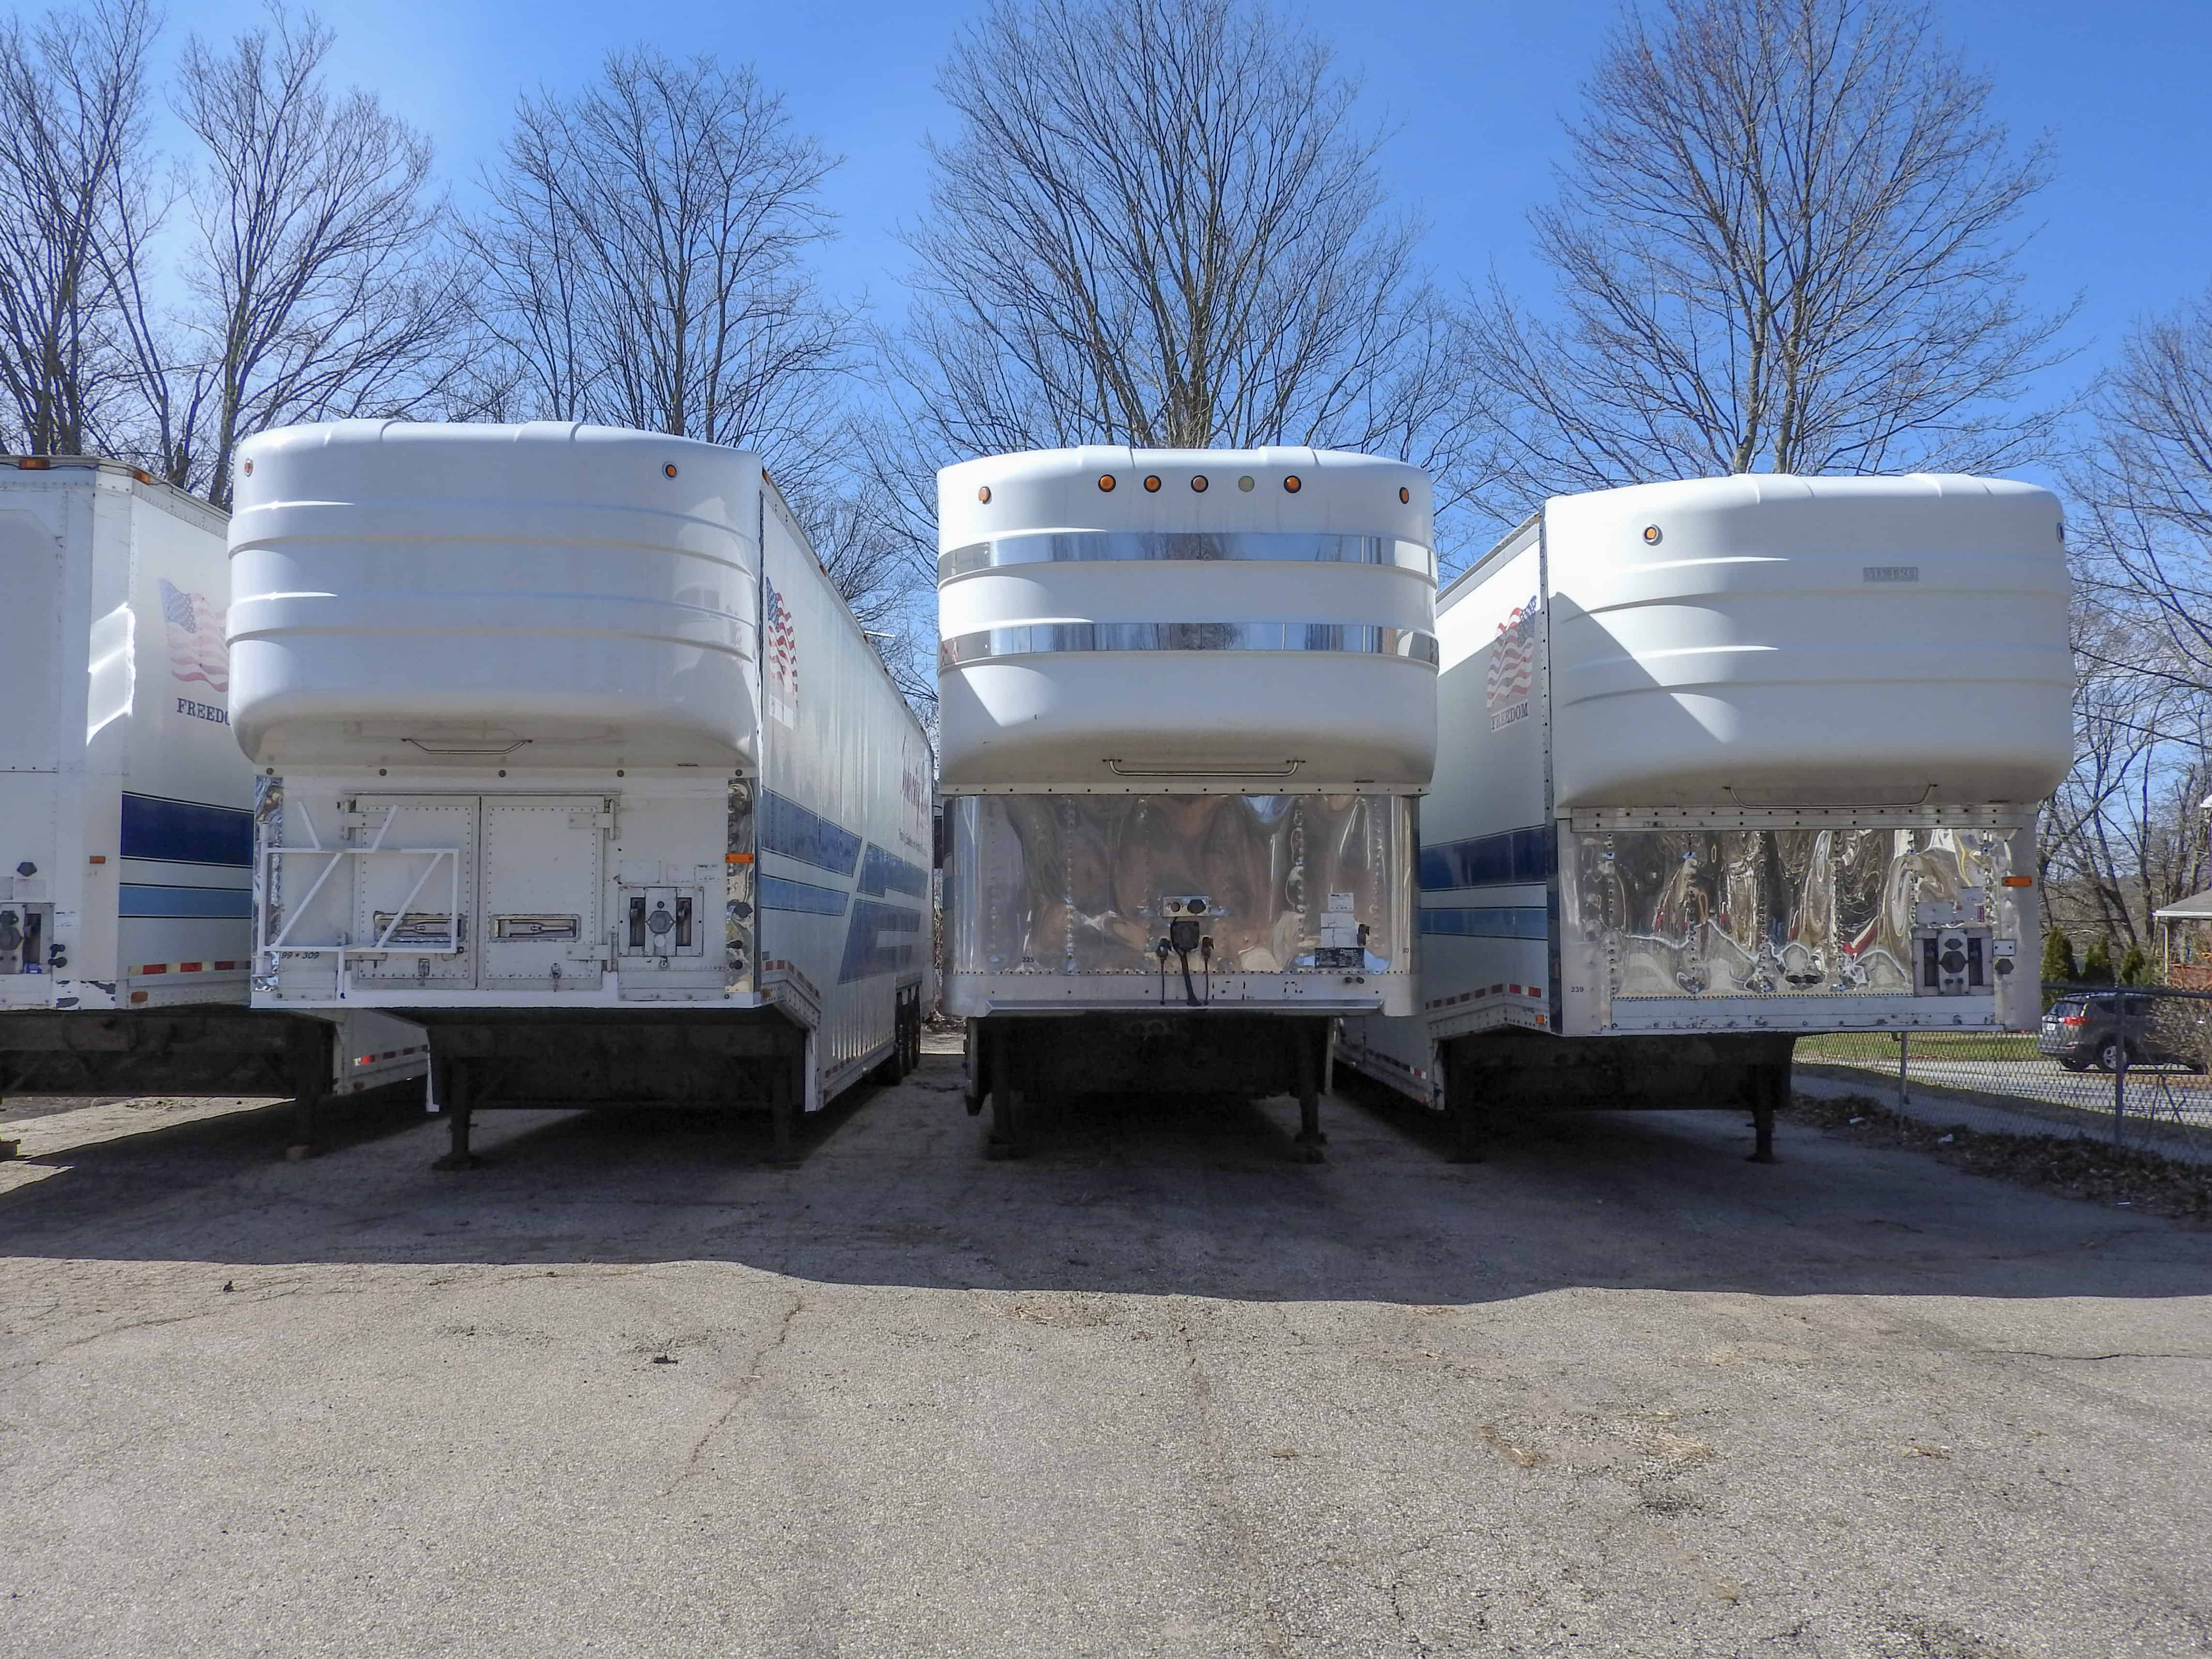 Picture of enclosed car carriers for sale